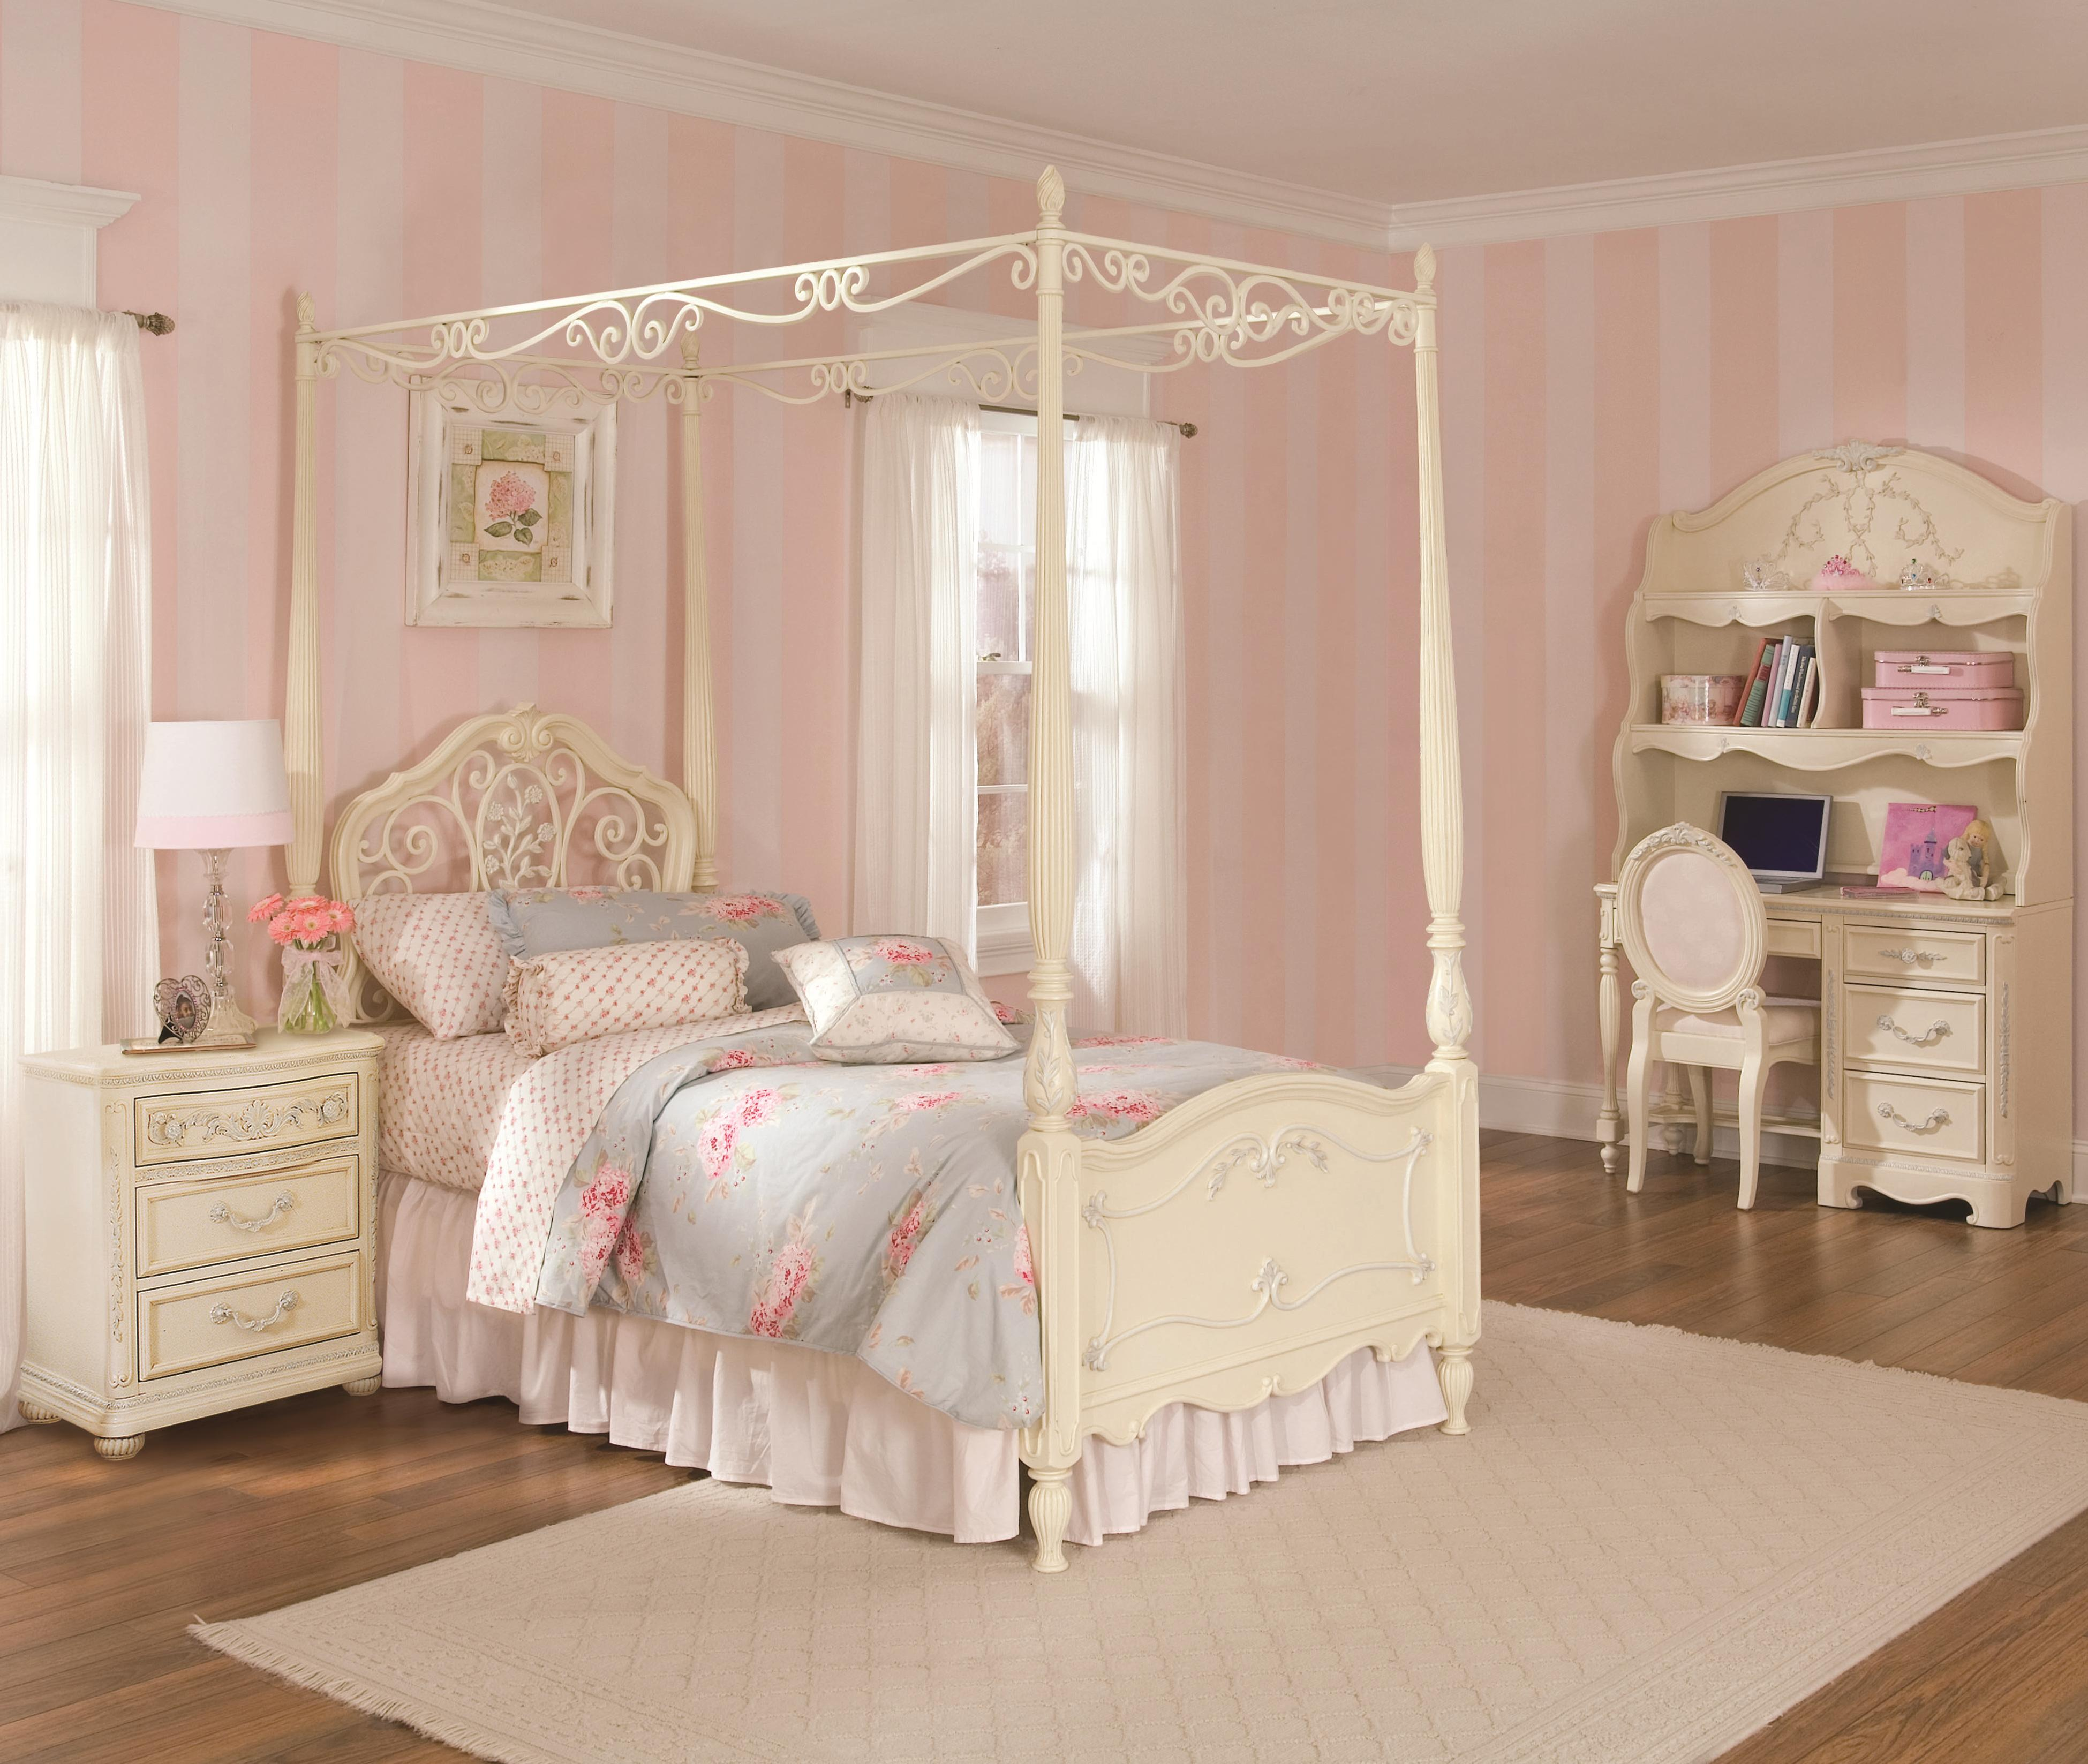 Lea Industries Twin Size Metal Wood Canopy Bed With Scroll Detailing Part Of The Jessica Mcclintock